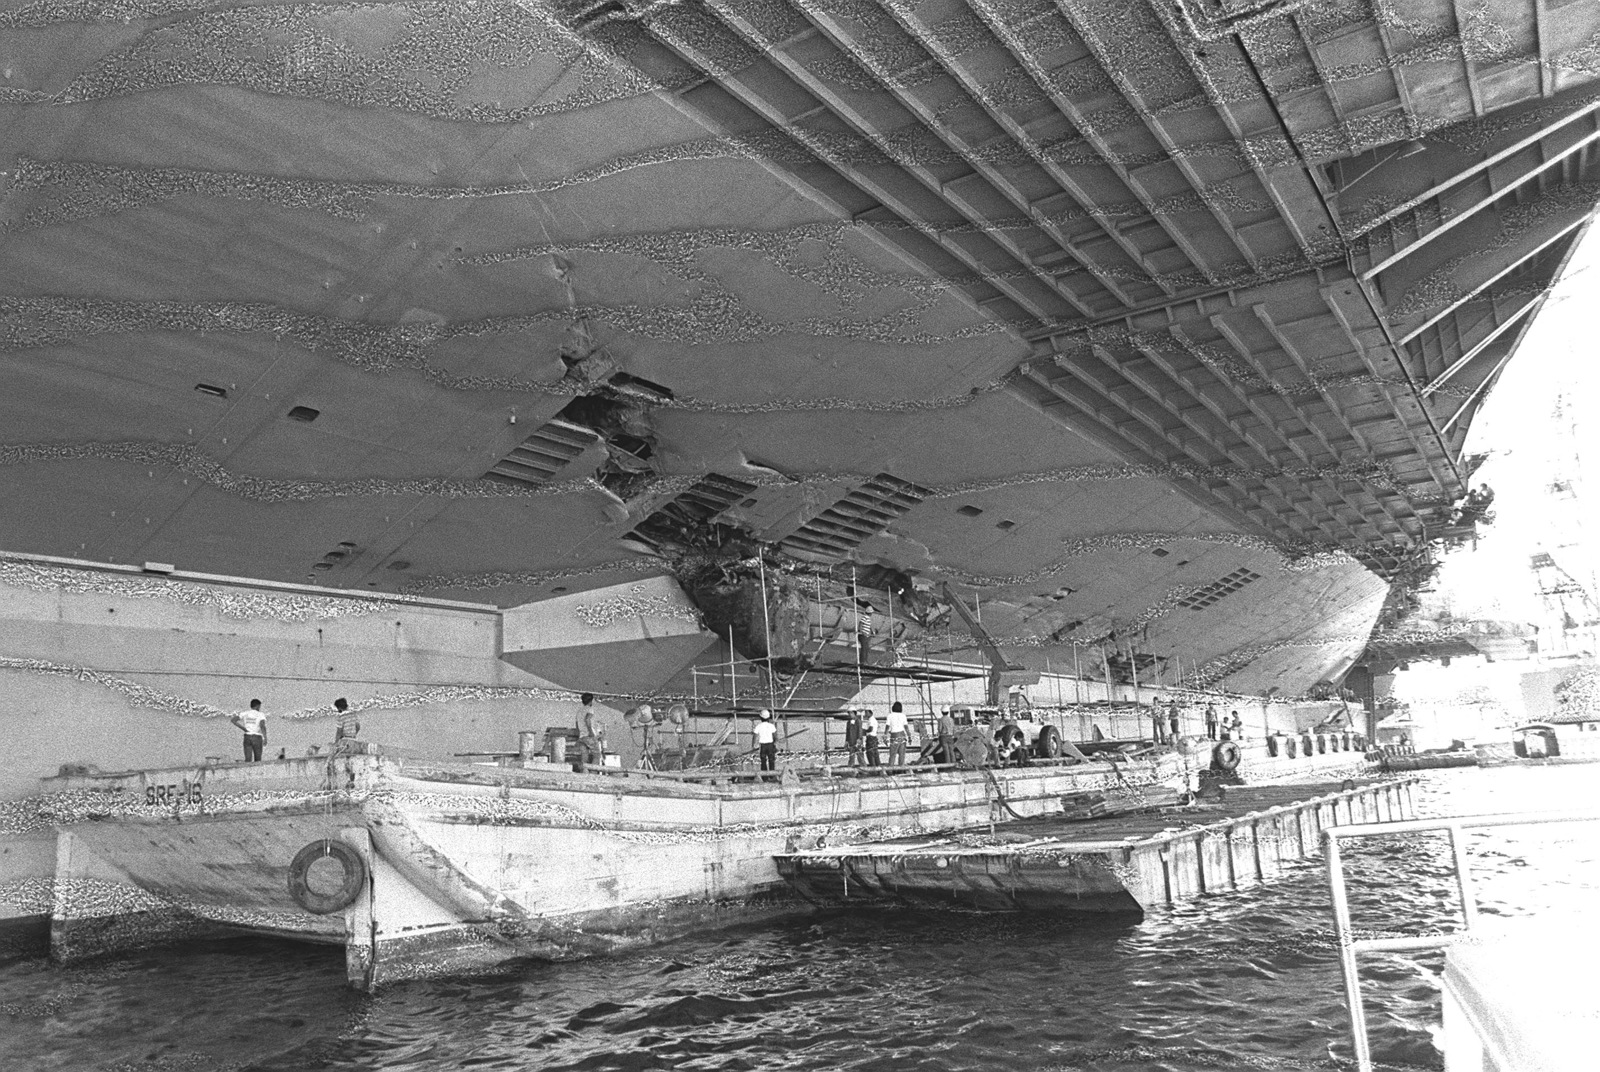 A view of damage caused to the port amidships section of the aircraft carrier USS MIDWAY (CV 41) when it collided with the Panamanian freighter CACTUS. (Substandard image)